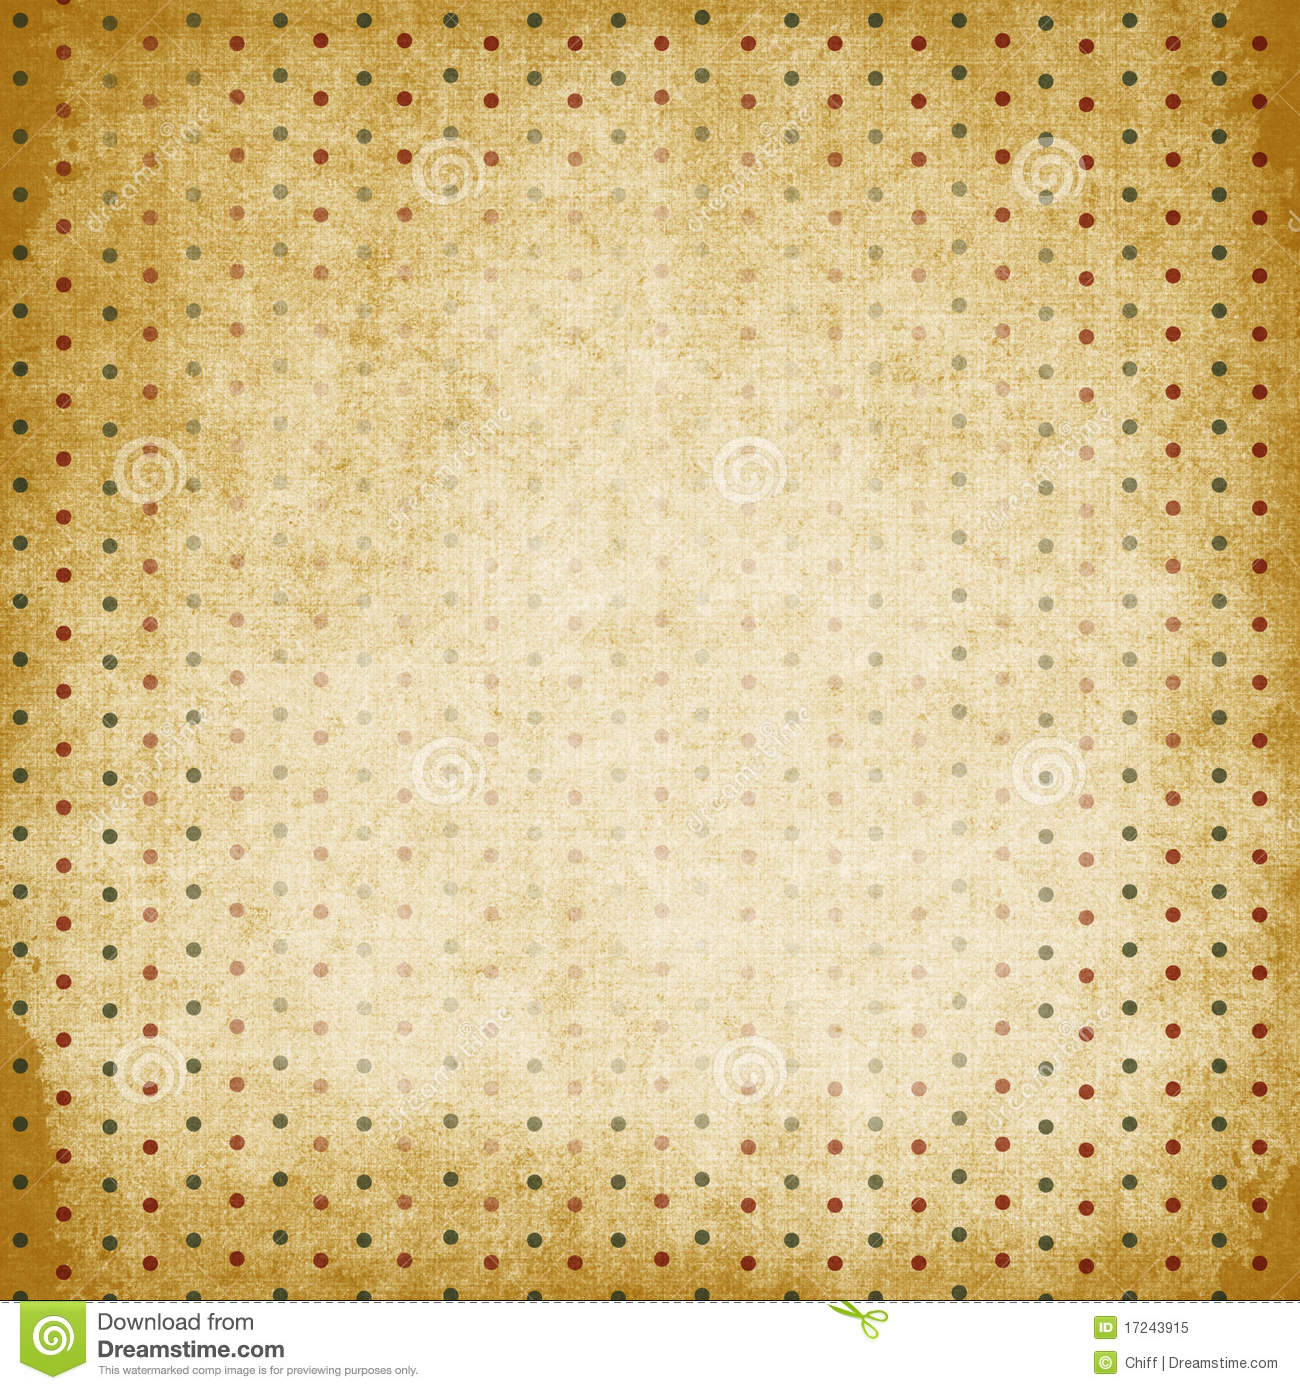 Background batik pattern stock photography image 803022 - Royalty Free Stock Photo Background Dots Pattern